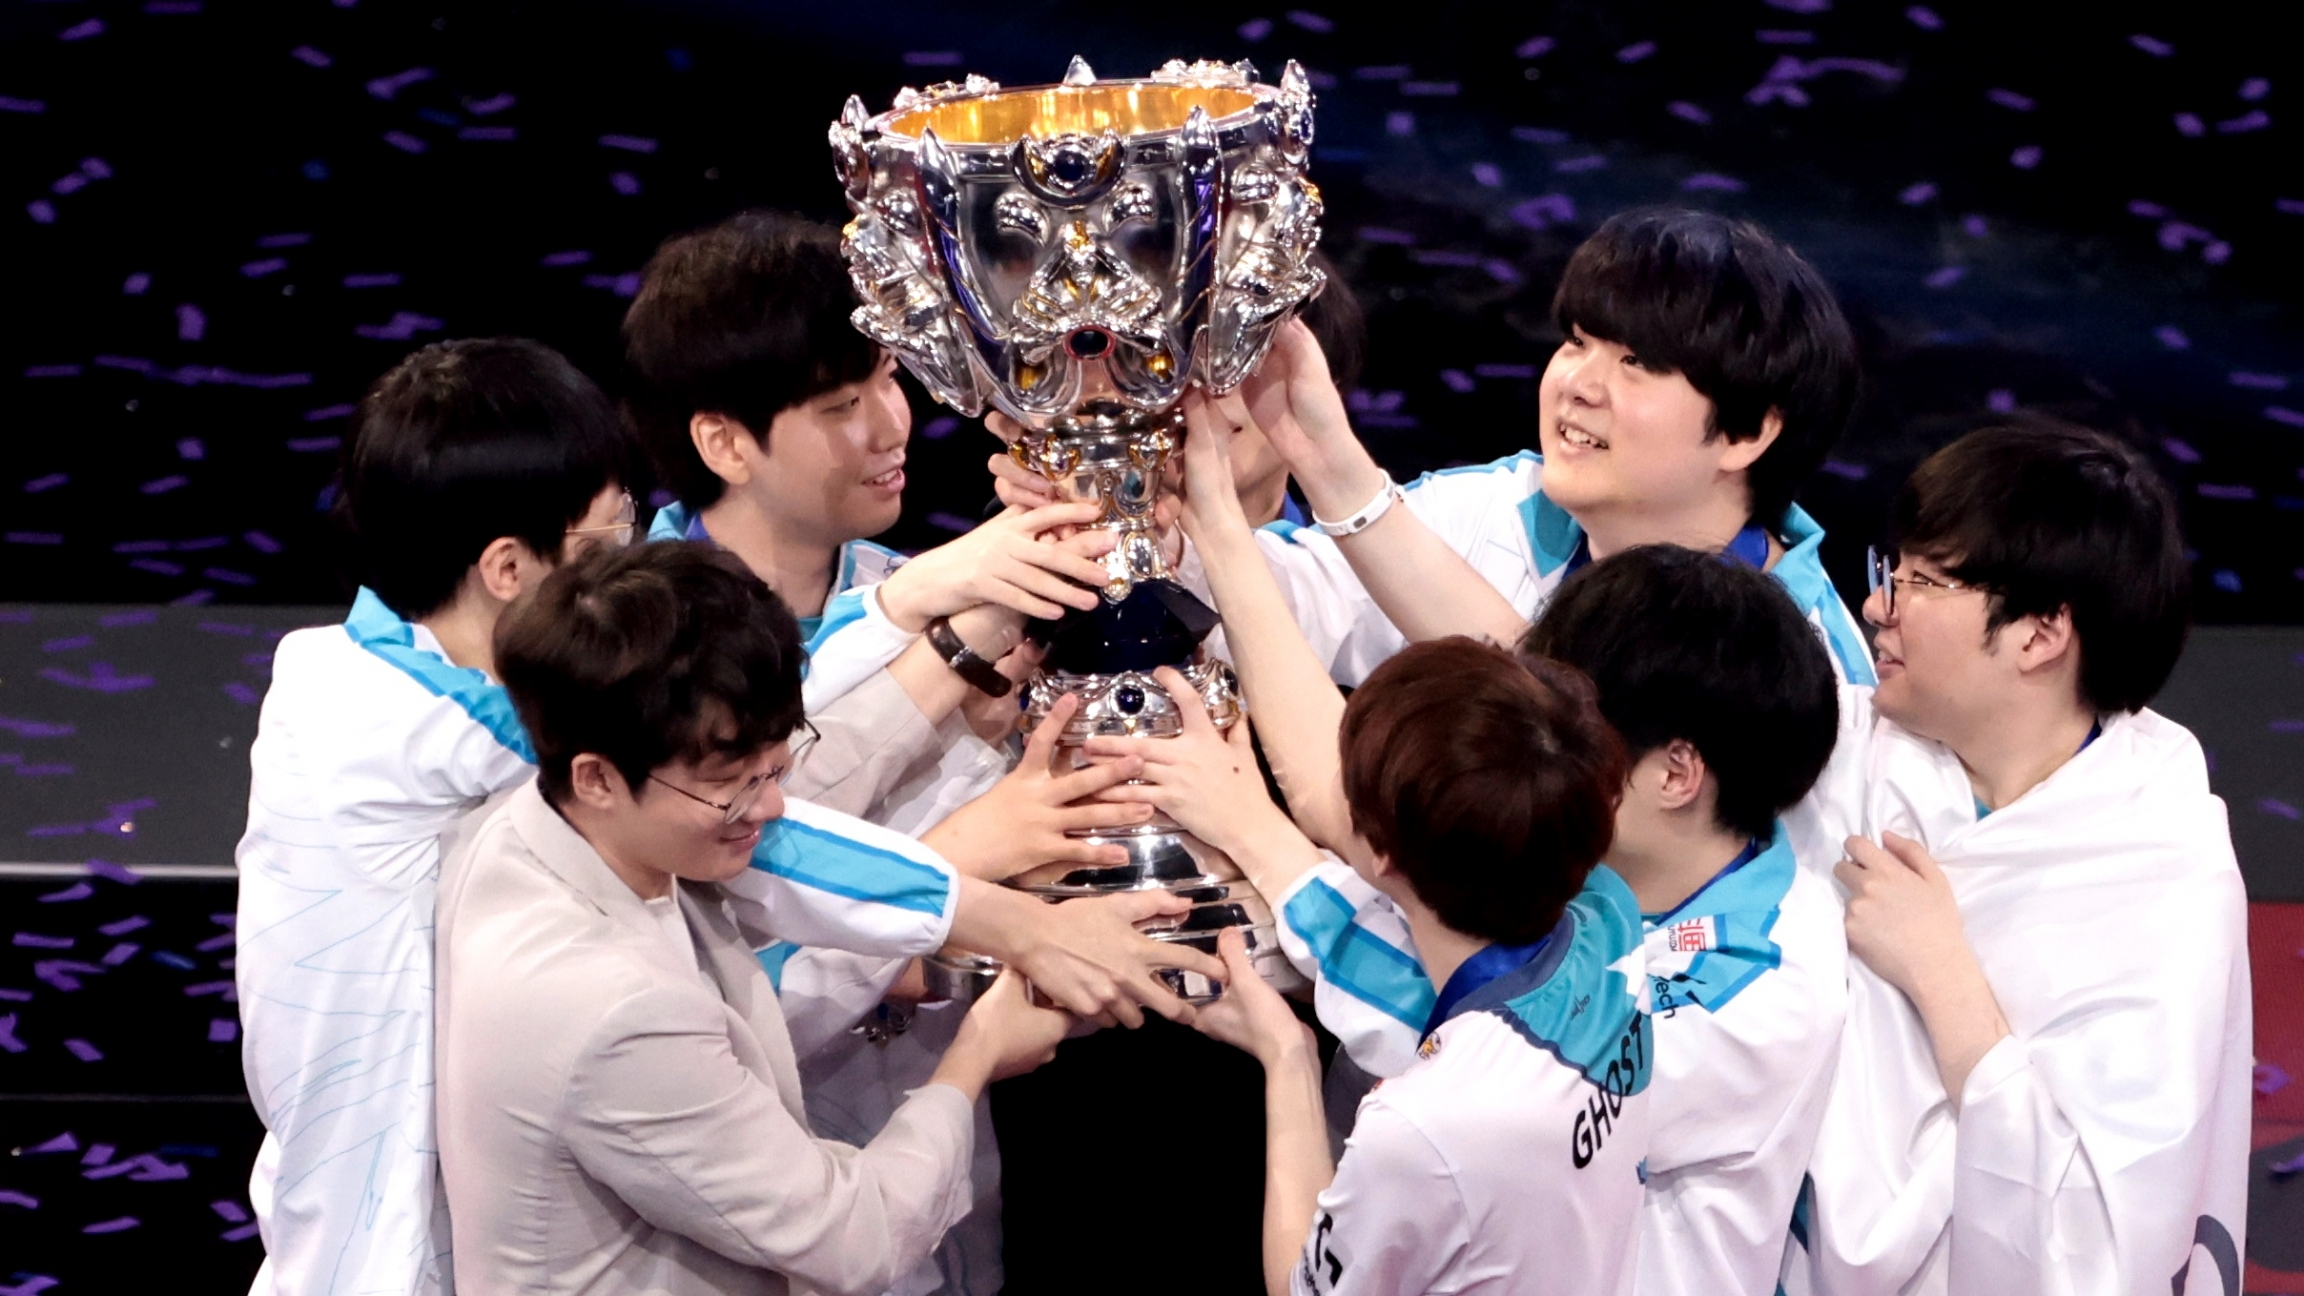 A group of Korean young men huddle around and hold up a trophy.